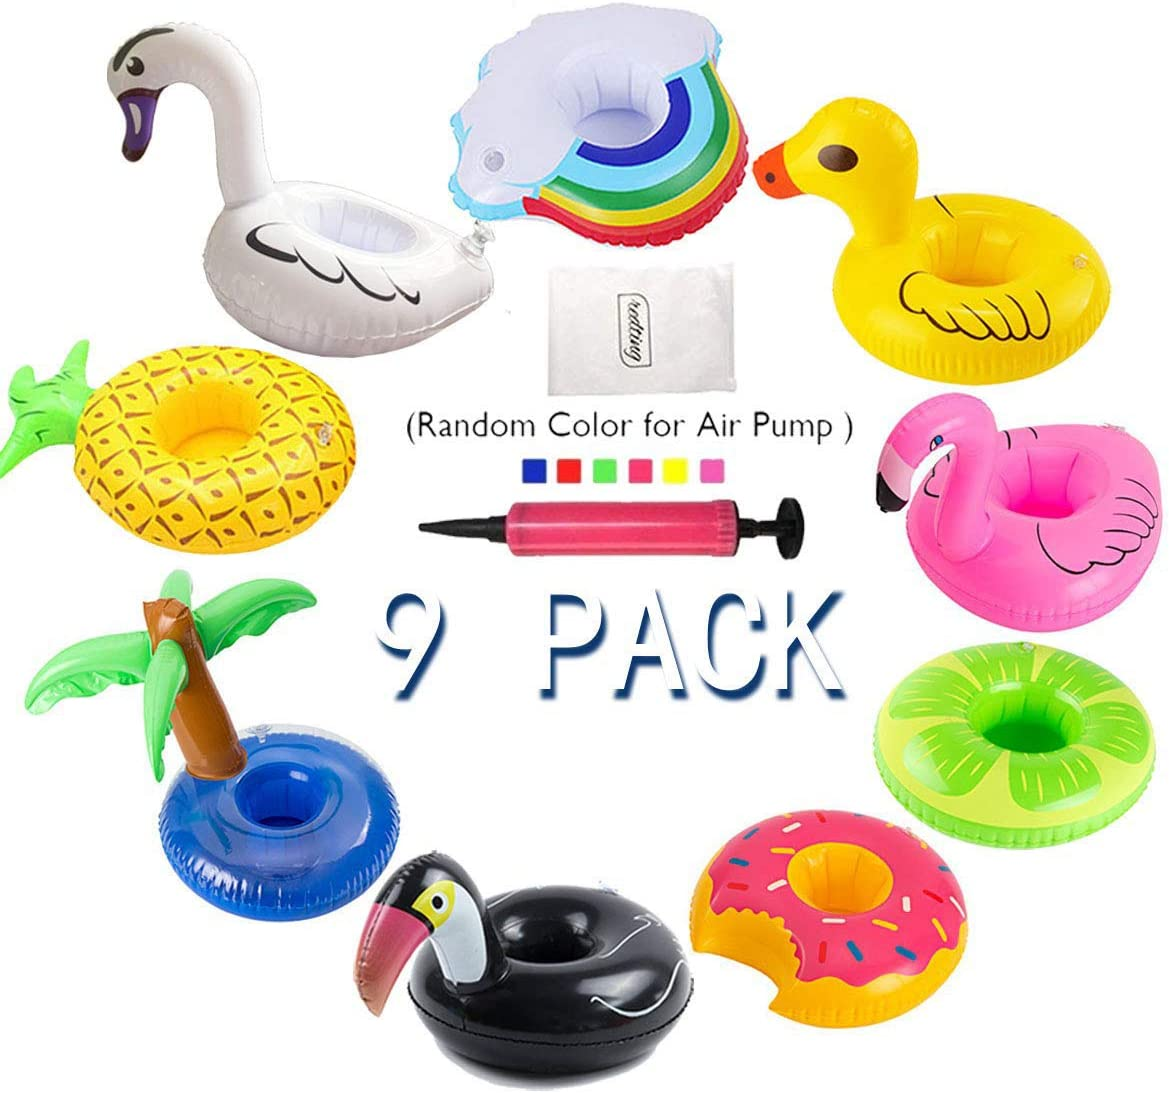 redting Inflatable Drink Holder 9 Pack Drink Pool Floats Cup Holder Floats Inflatable Floating Coasters for Pool Party